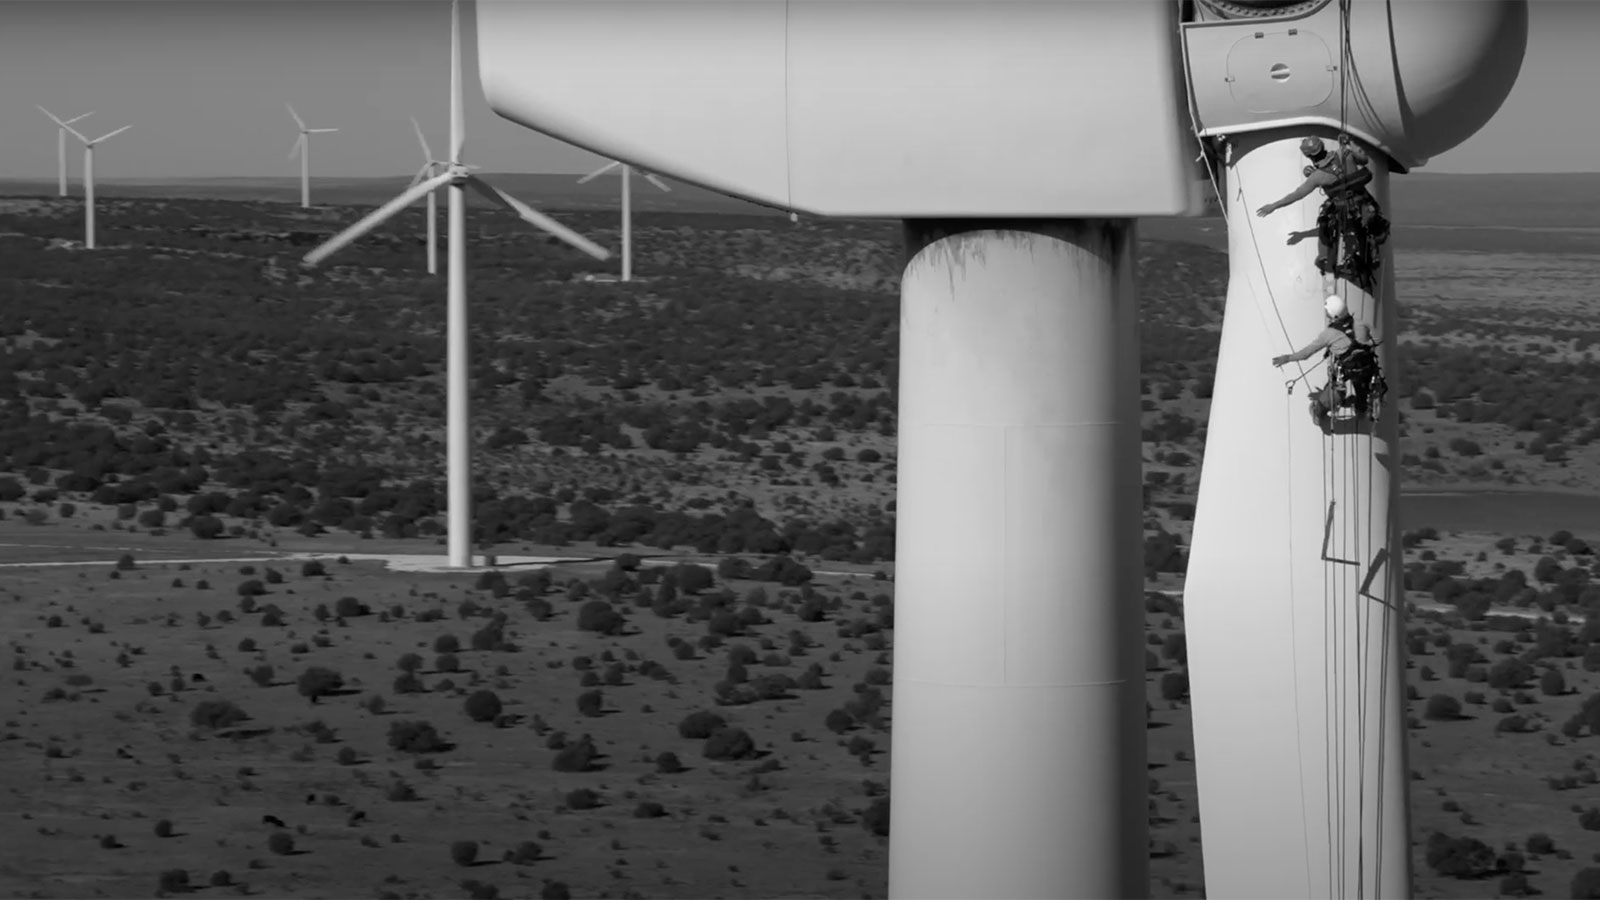 A screenshot from a video targeting builders for climate projects. Shows a landscape with wind turbines up close and in the distance